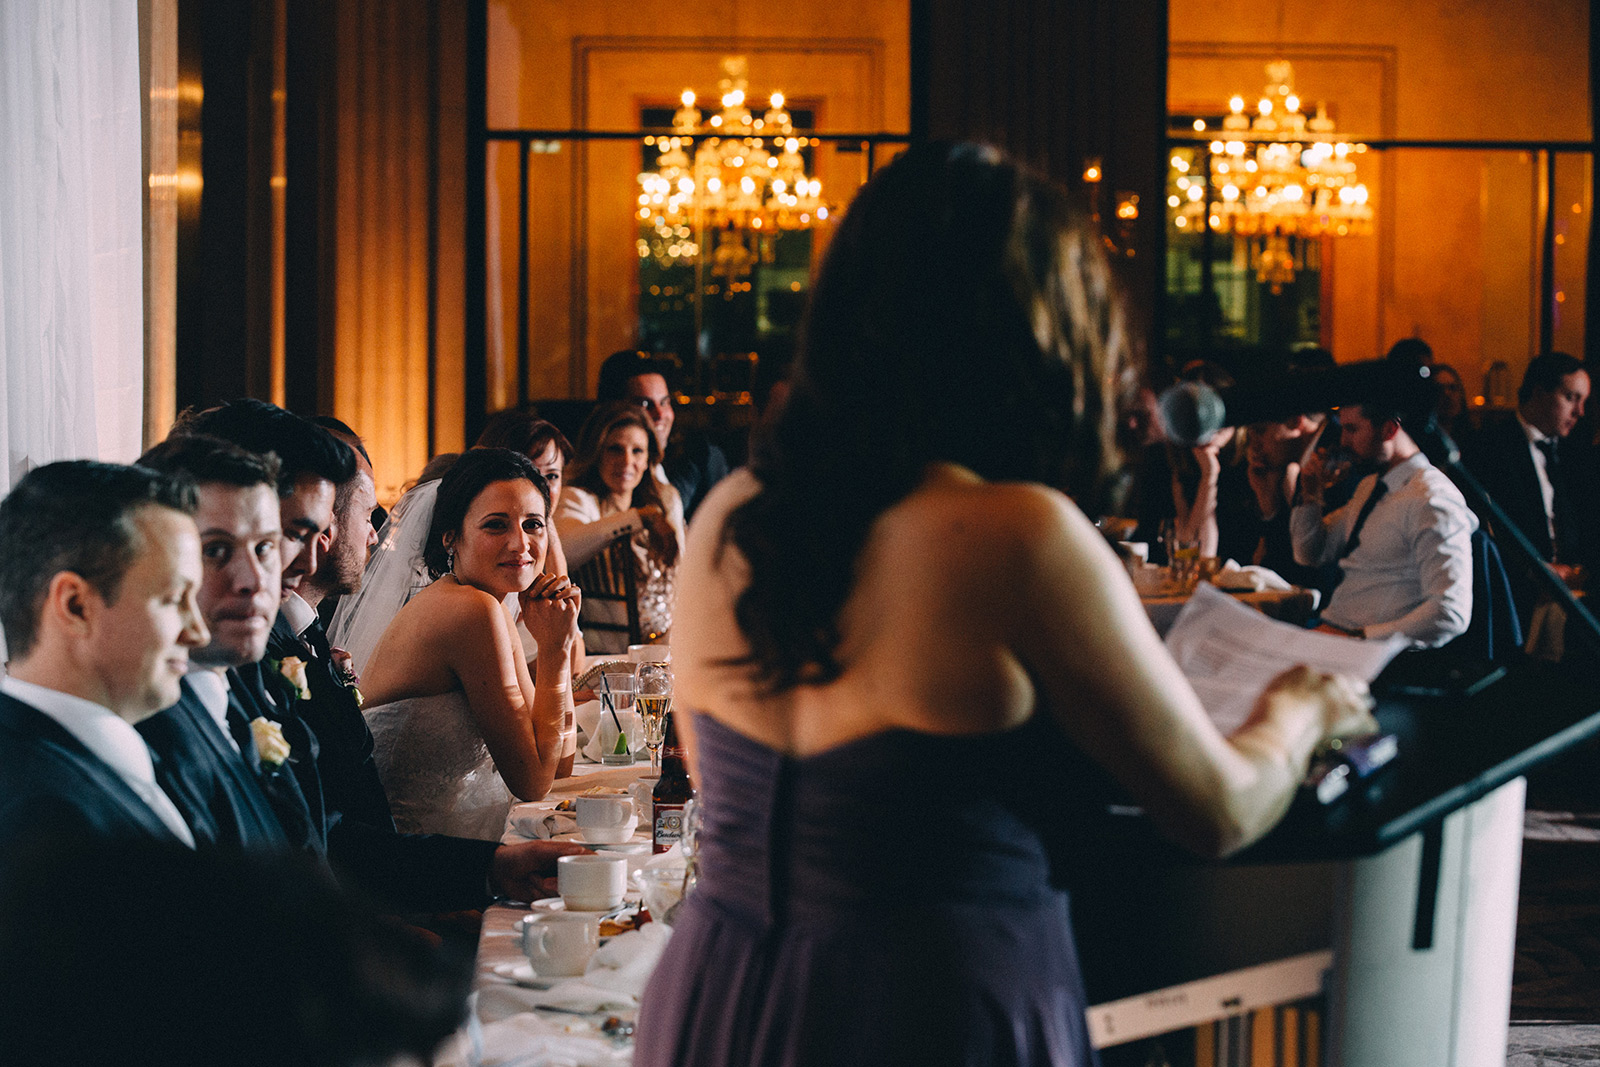 One-King-West-Toronto-wedding-photography_Sam-Wong-of-Visual-Cravings_KnR-37